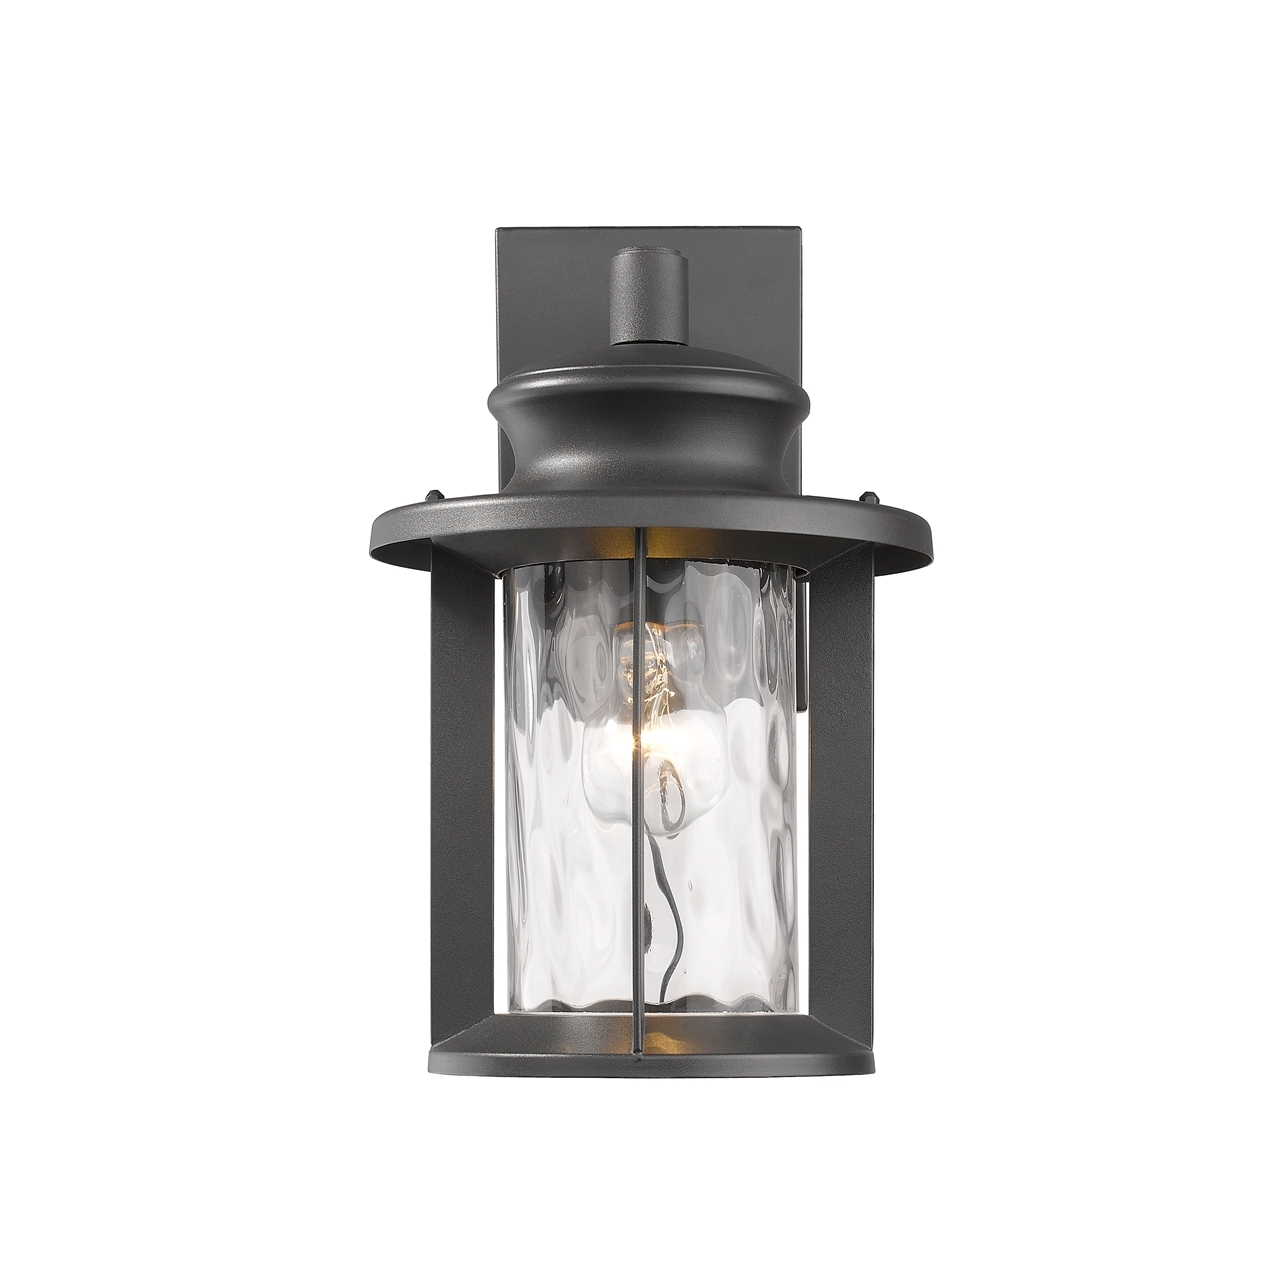 Chloe Lighting Inc Ch2s074bk14 Od1 Out Door Wall Sconce